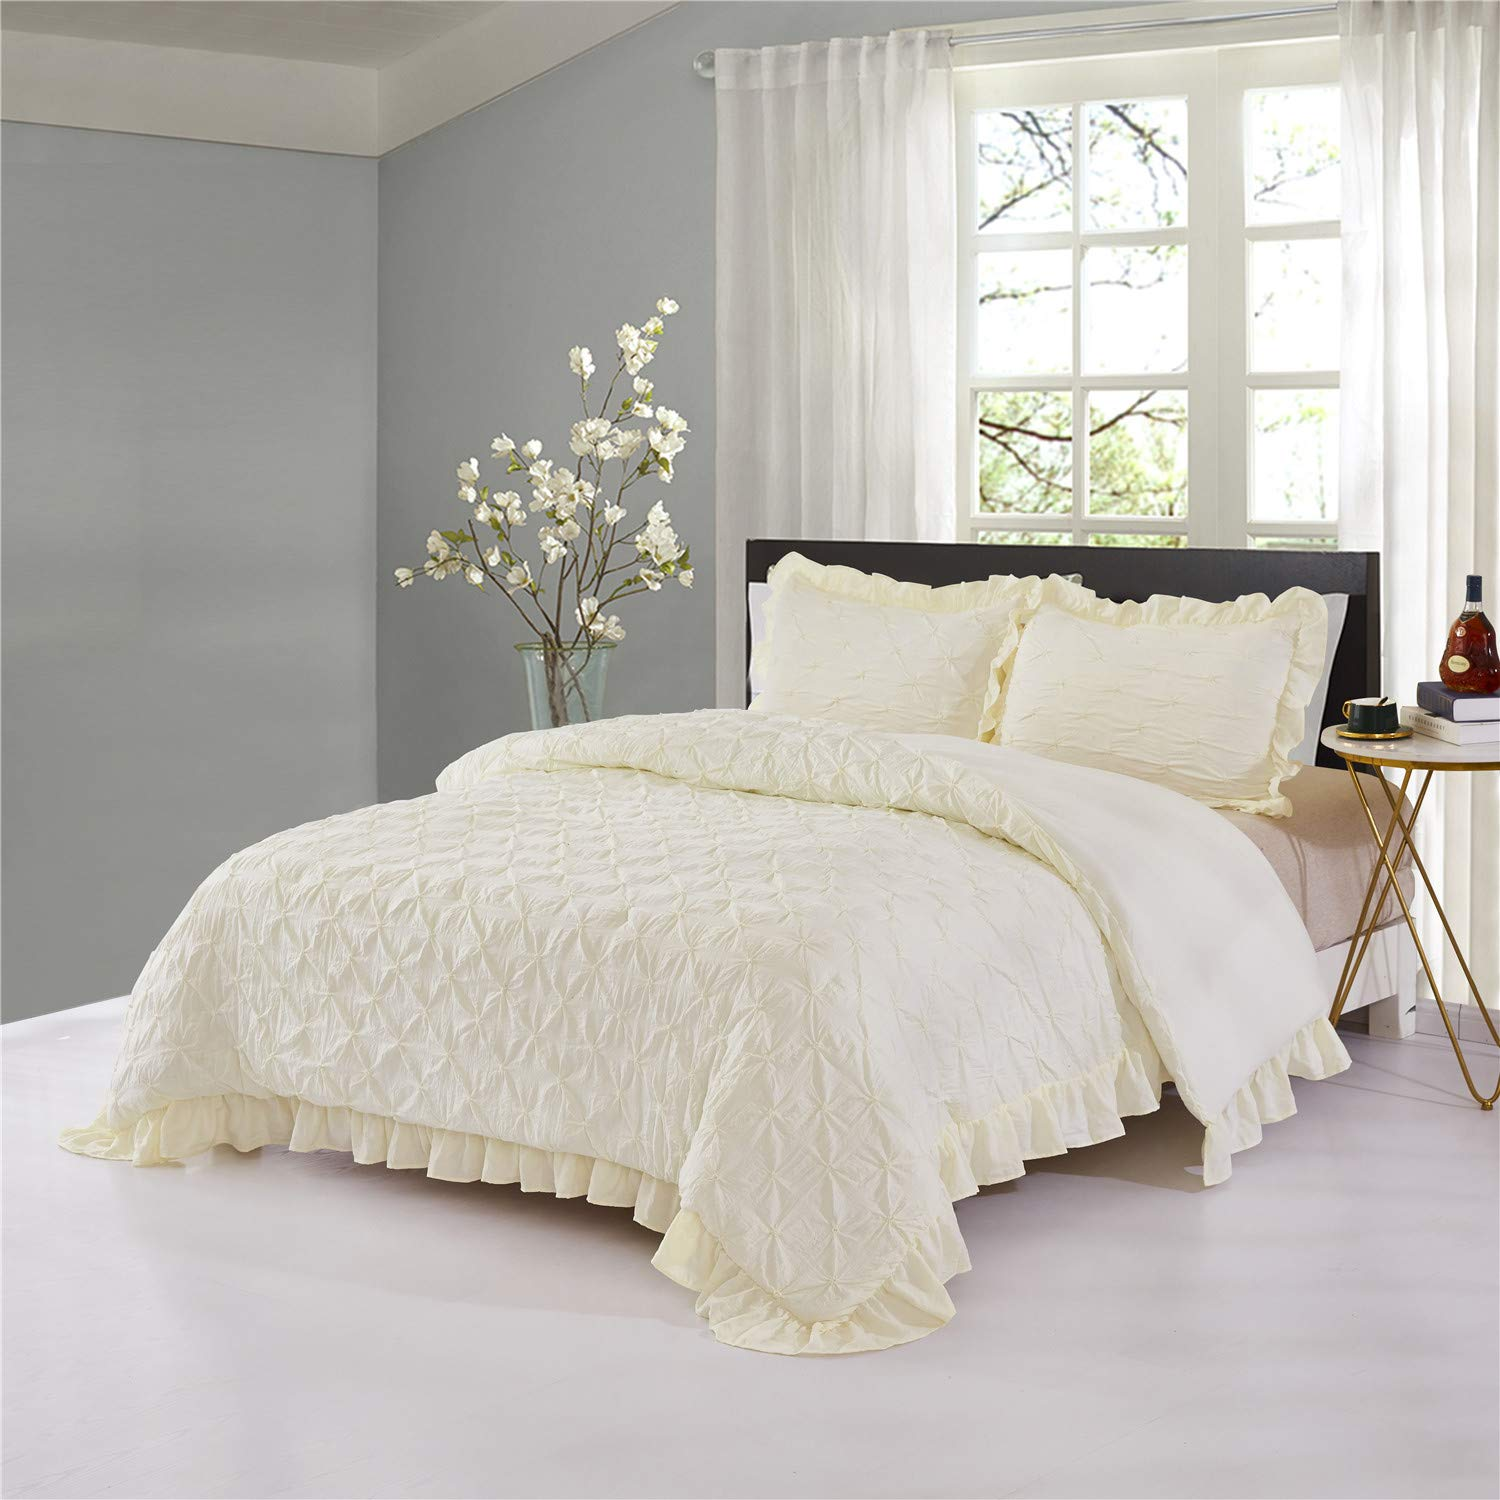 HIG Pinch Pleated Comforter Set Queen Ivory Lace Ruffled- Super Soft Hypoallergenic Prewashed Microfiber - Shabby Chic Farmhouse Style - Pintuck Ruffled 3 Piece Bedding Set (Brianna-Queen, Ivory)